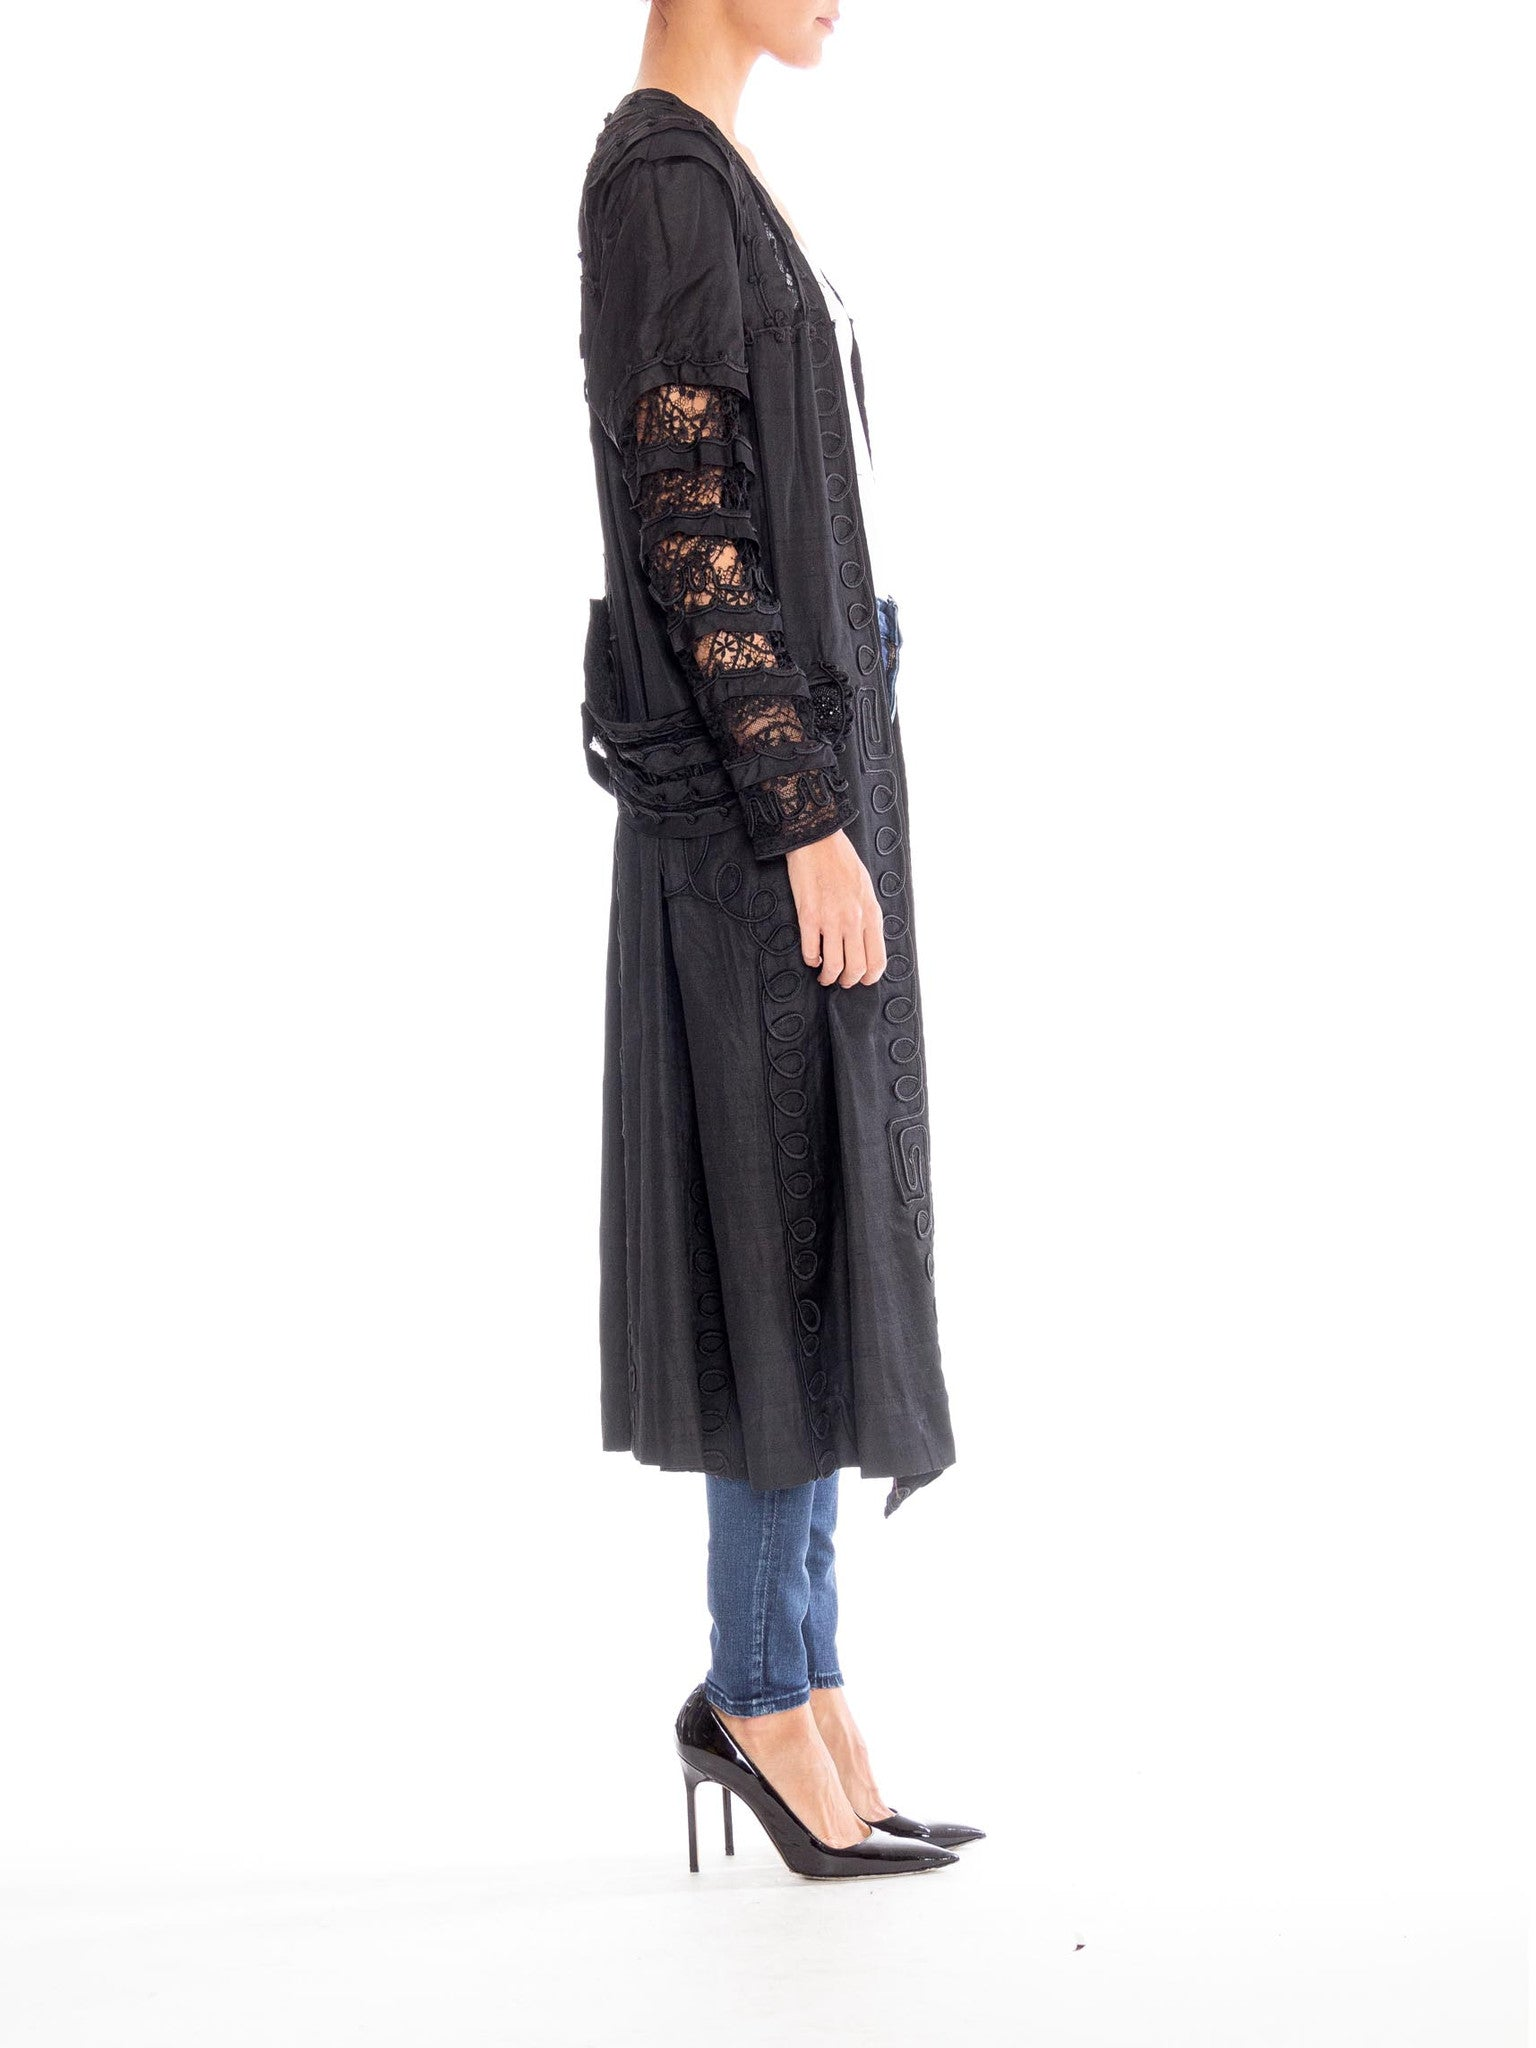 Edwardian Black Silk Dupioni & Lace Duster With Beaded Braided Trim